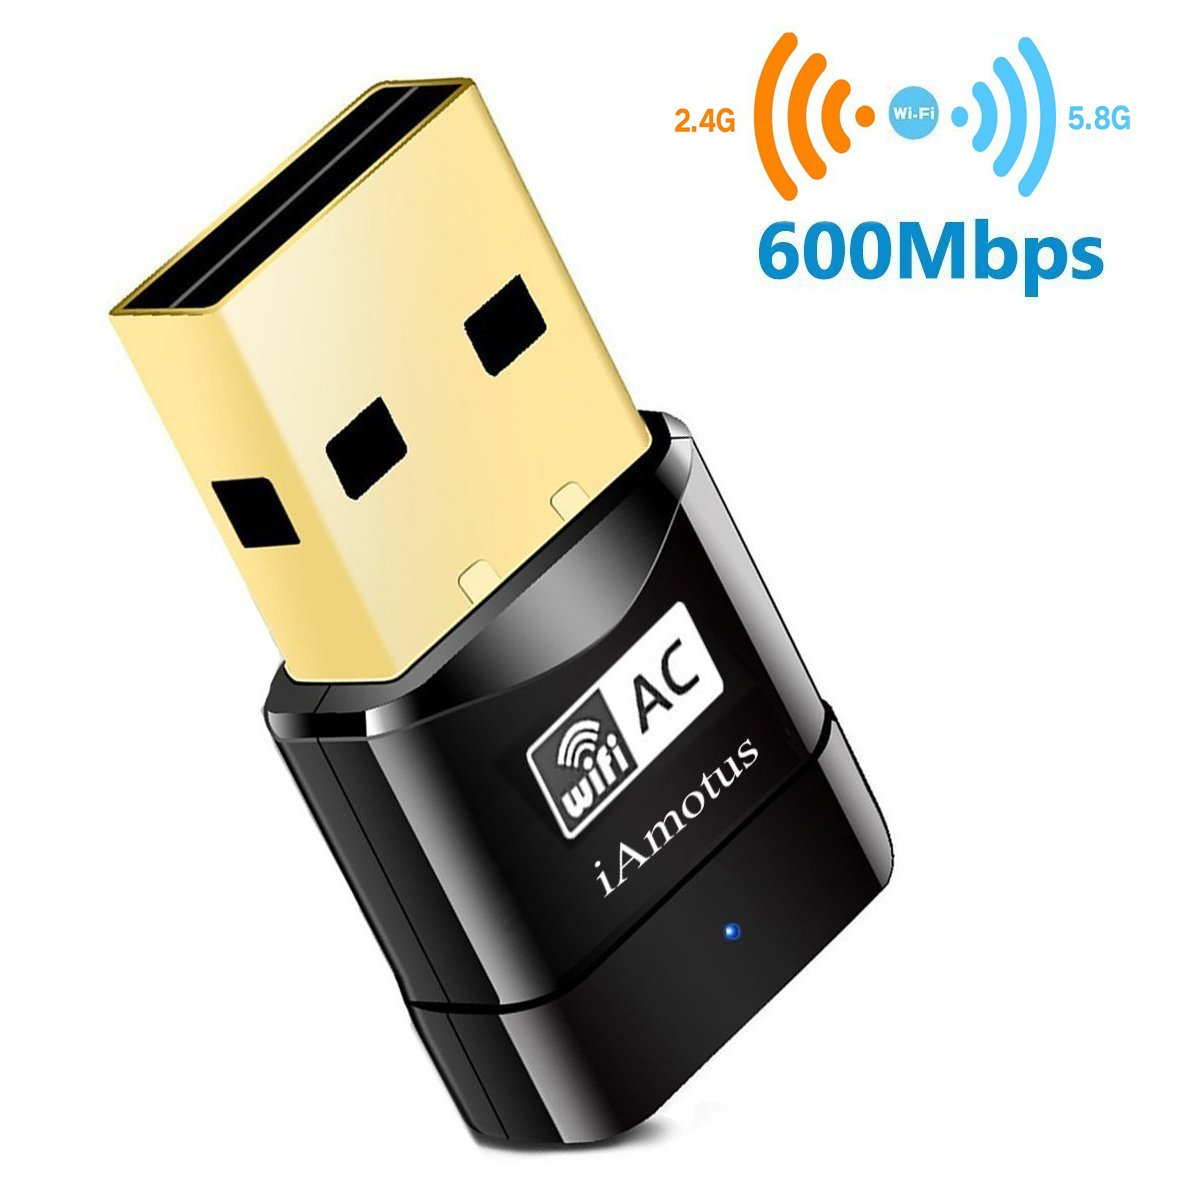 iAmotus USB WiFi Adaptateur [Garantie à 2 ans] AC600 Mbps Mini Double Bande Wireless WIFI (5GHz 433Mbps/2.4GHz 150Mbps) Sans fil Dongles Wlan Stick pour PC Windows XP/ Vista/ 7/ 8/ 10 Linux Mac OS 5B06